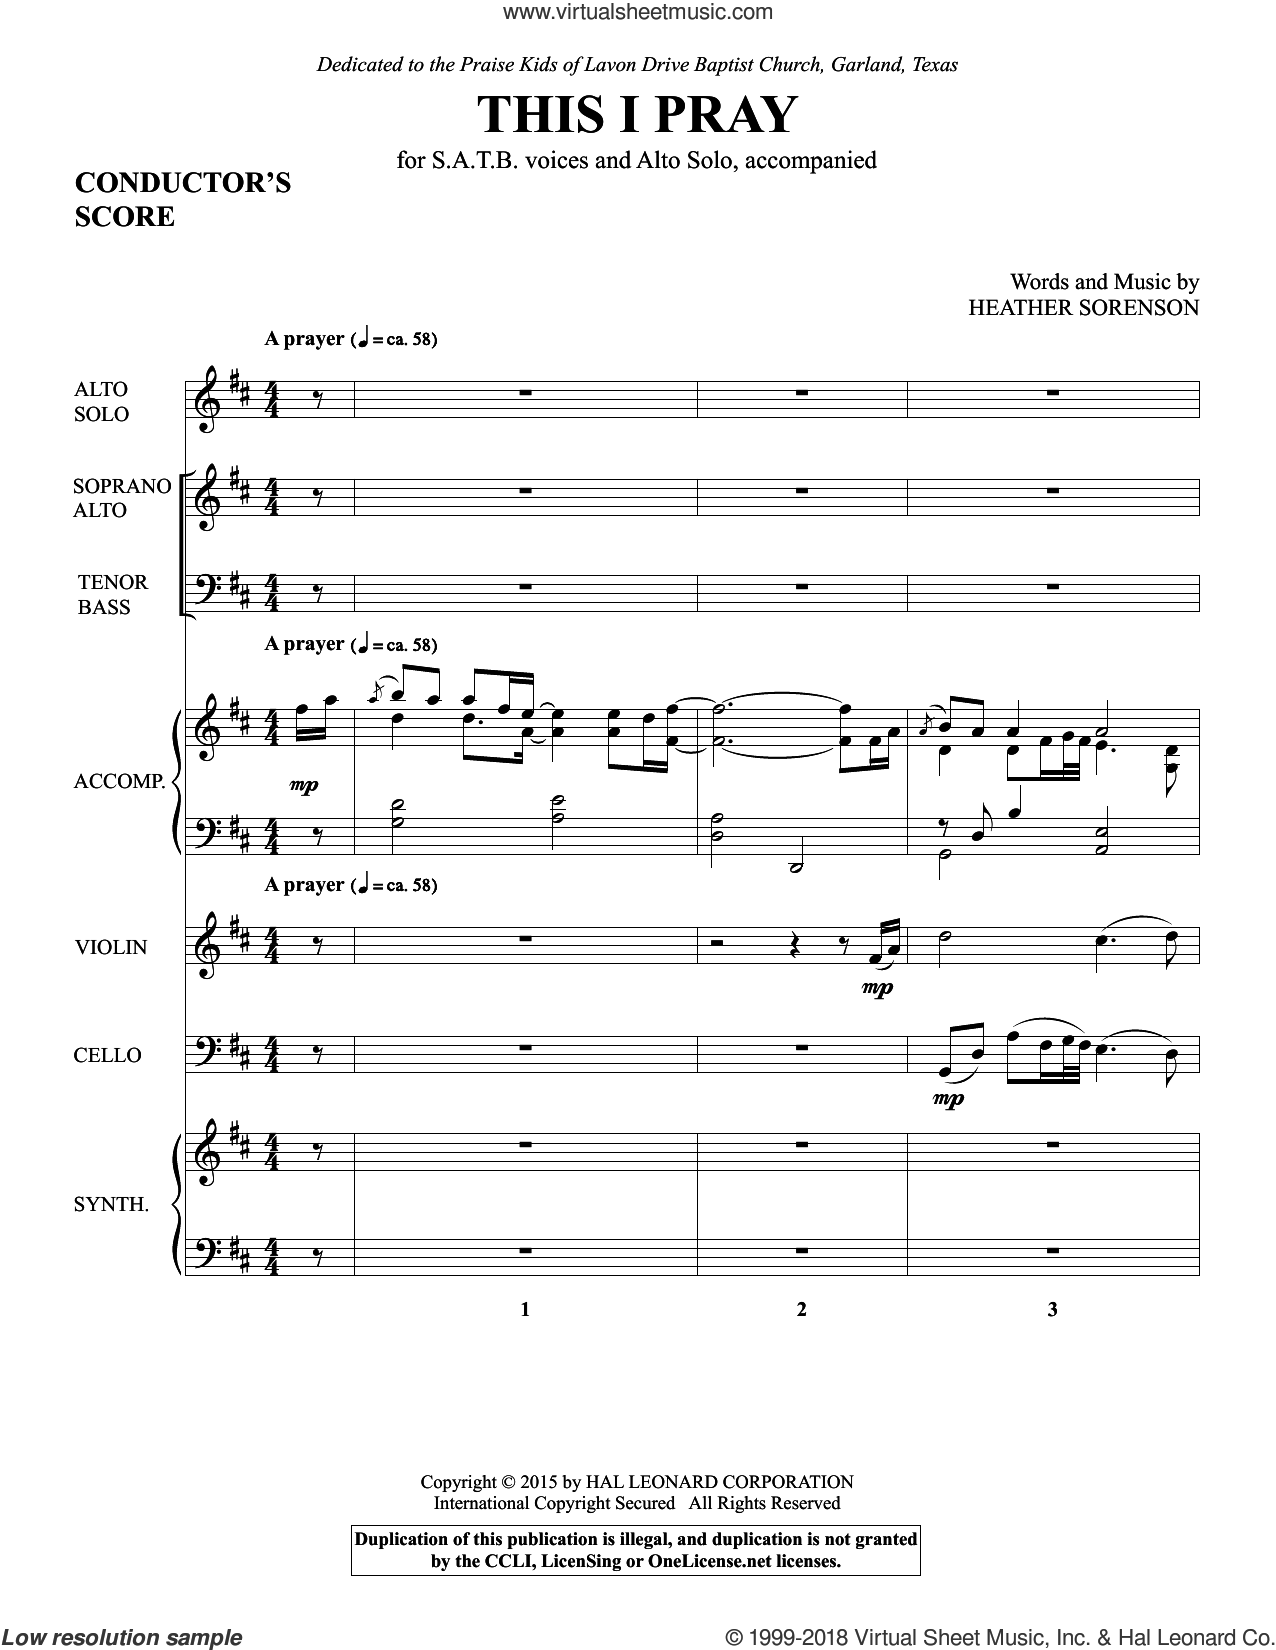 This I Pray (COMPLETE) sheet music for orchestra/band by Heather Sorenson, intermediate